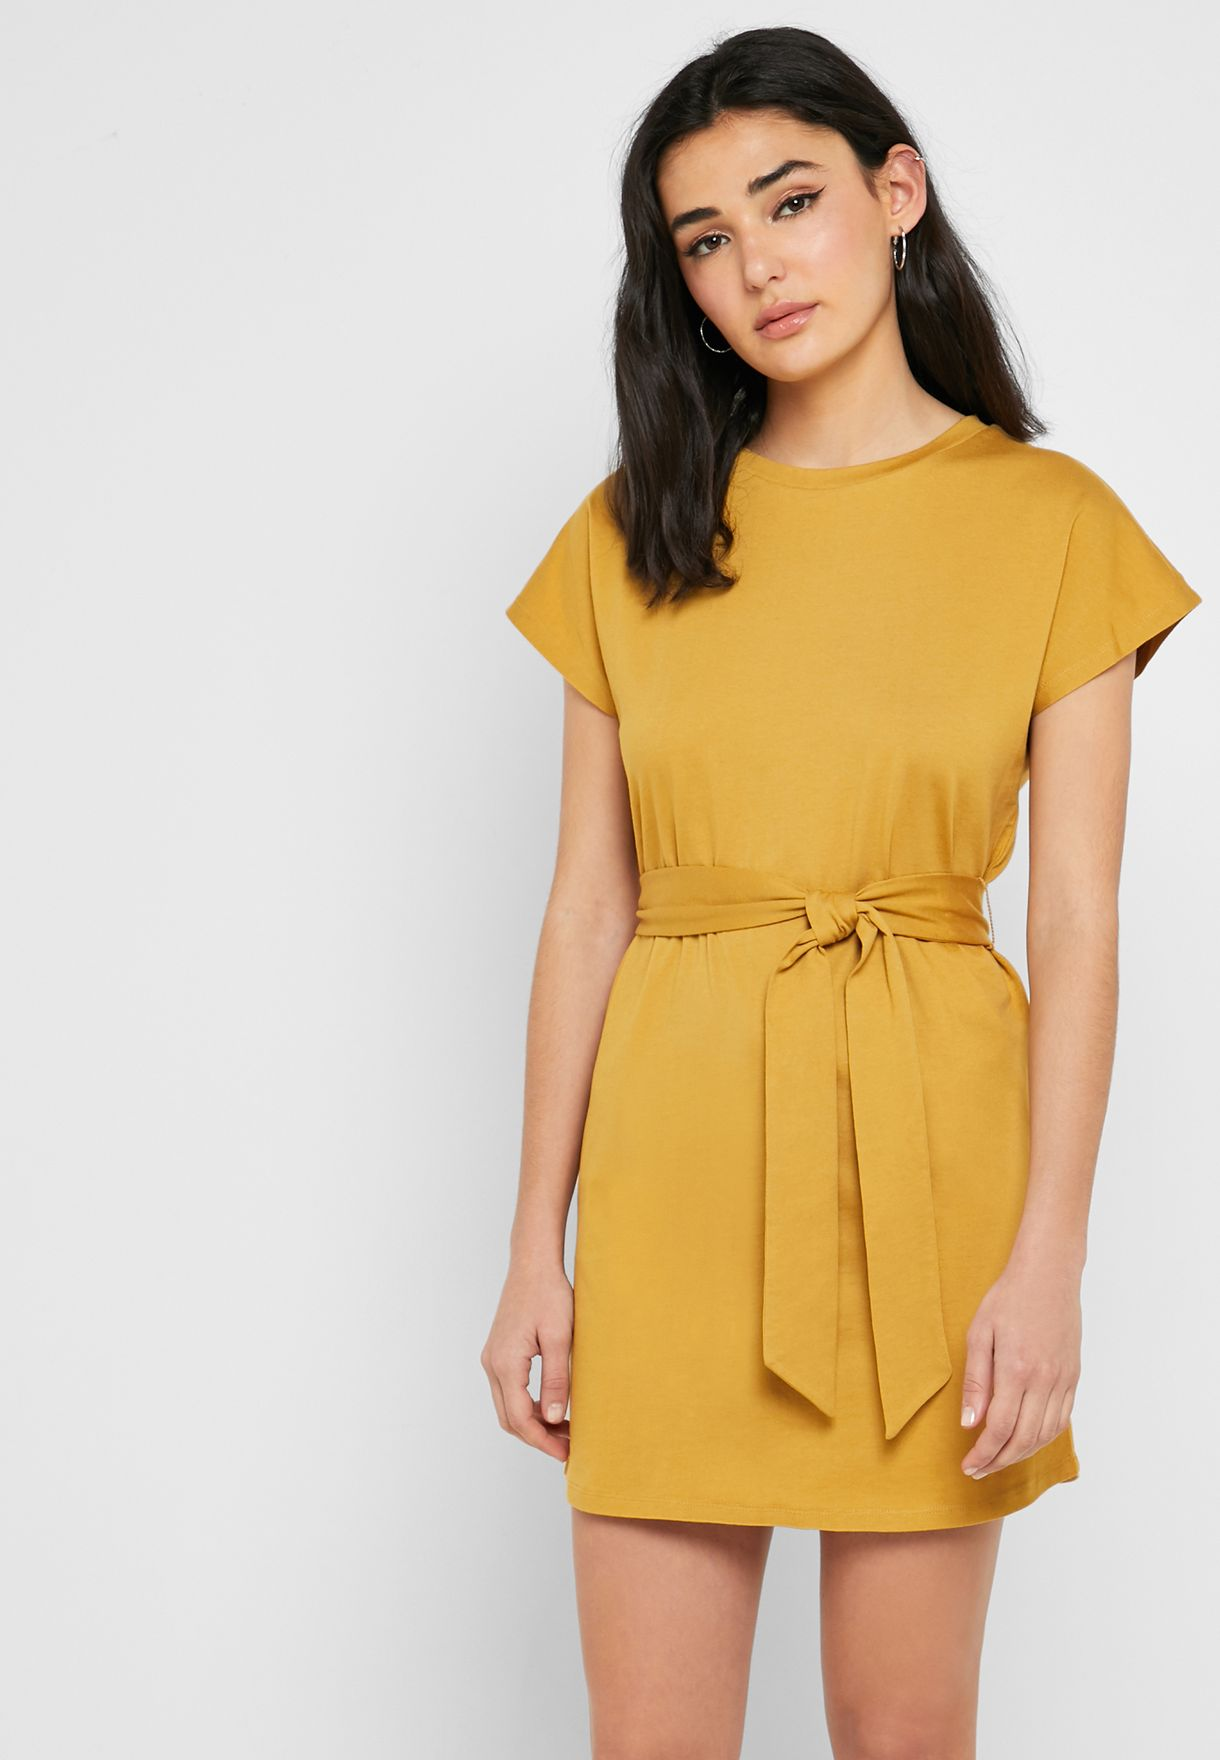 Shop Forever 21 Yellow Belted T Shirt Dress 331376 For Women In Uae